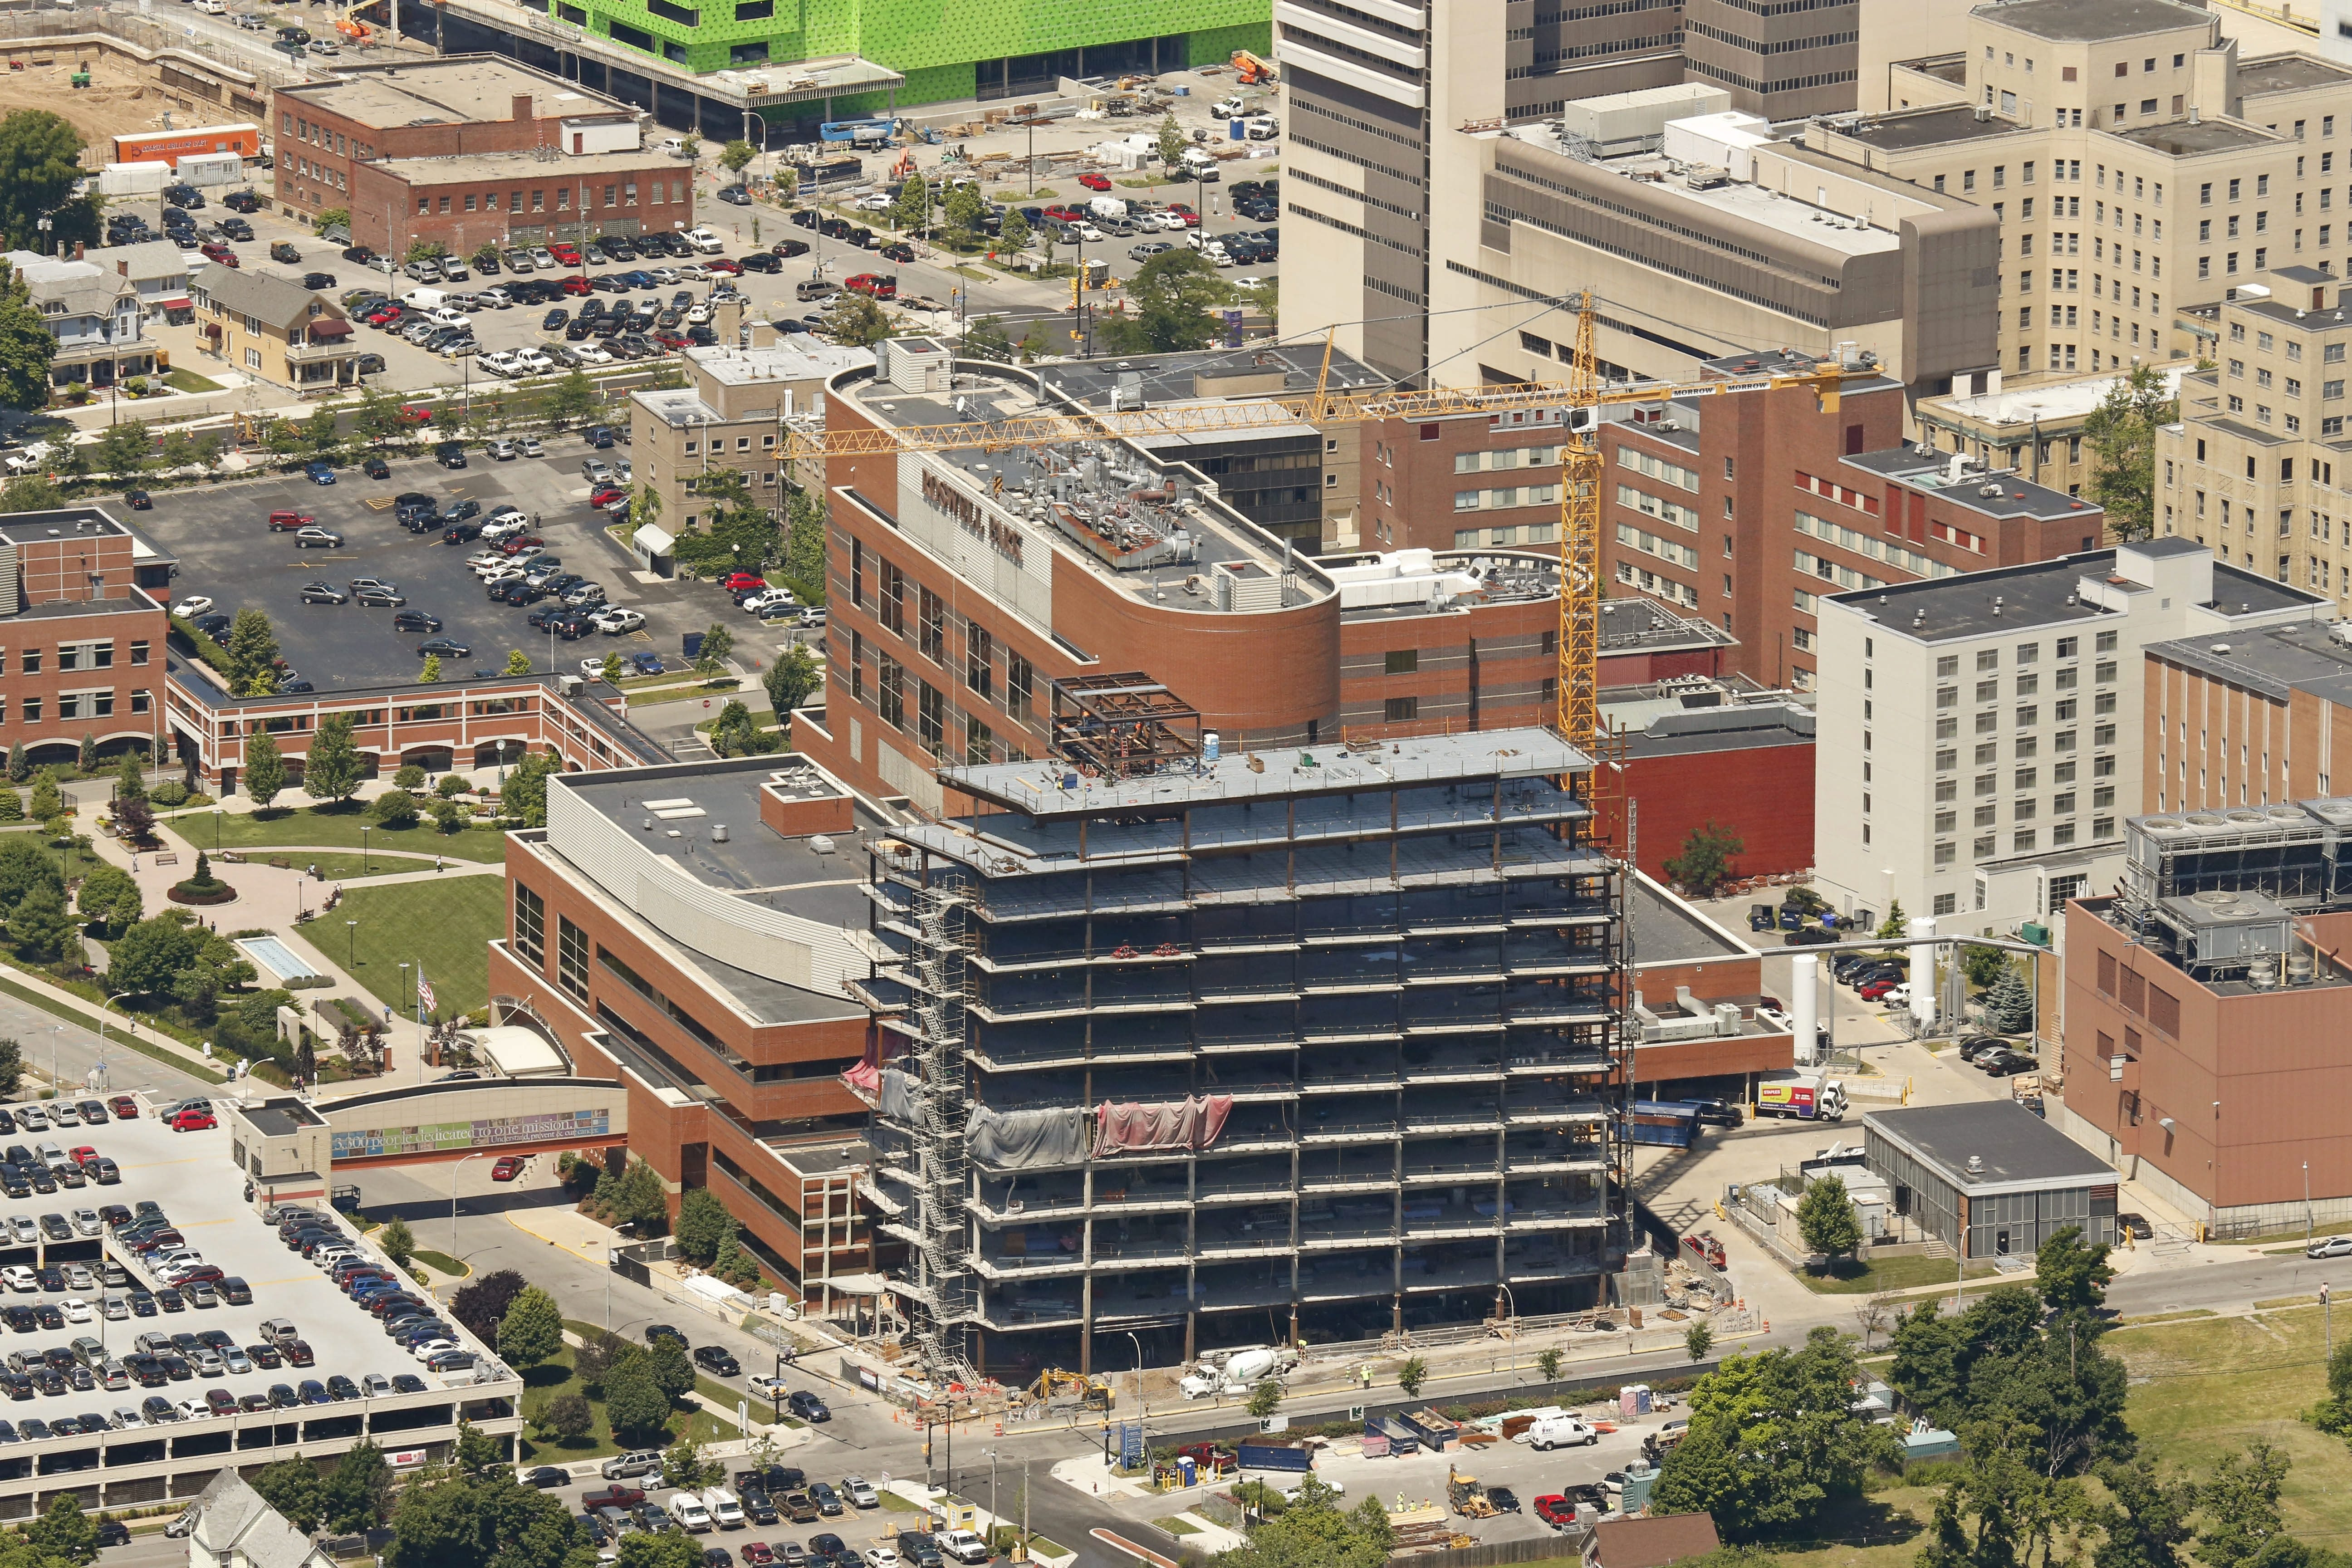 The construction now under way on Roswell Park Cancer Institute's Clinical Sciences Center is tangible evidence of Dr. Donald L. Trump's leadership.